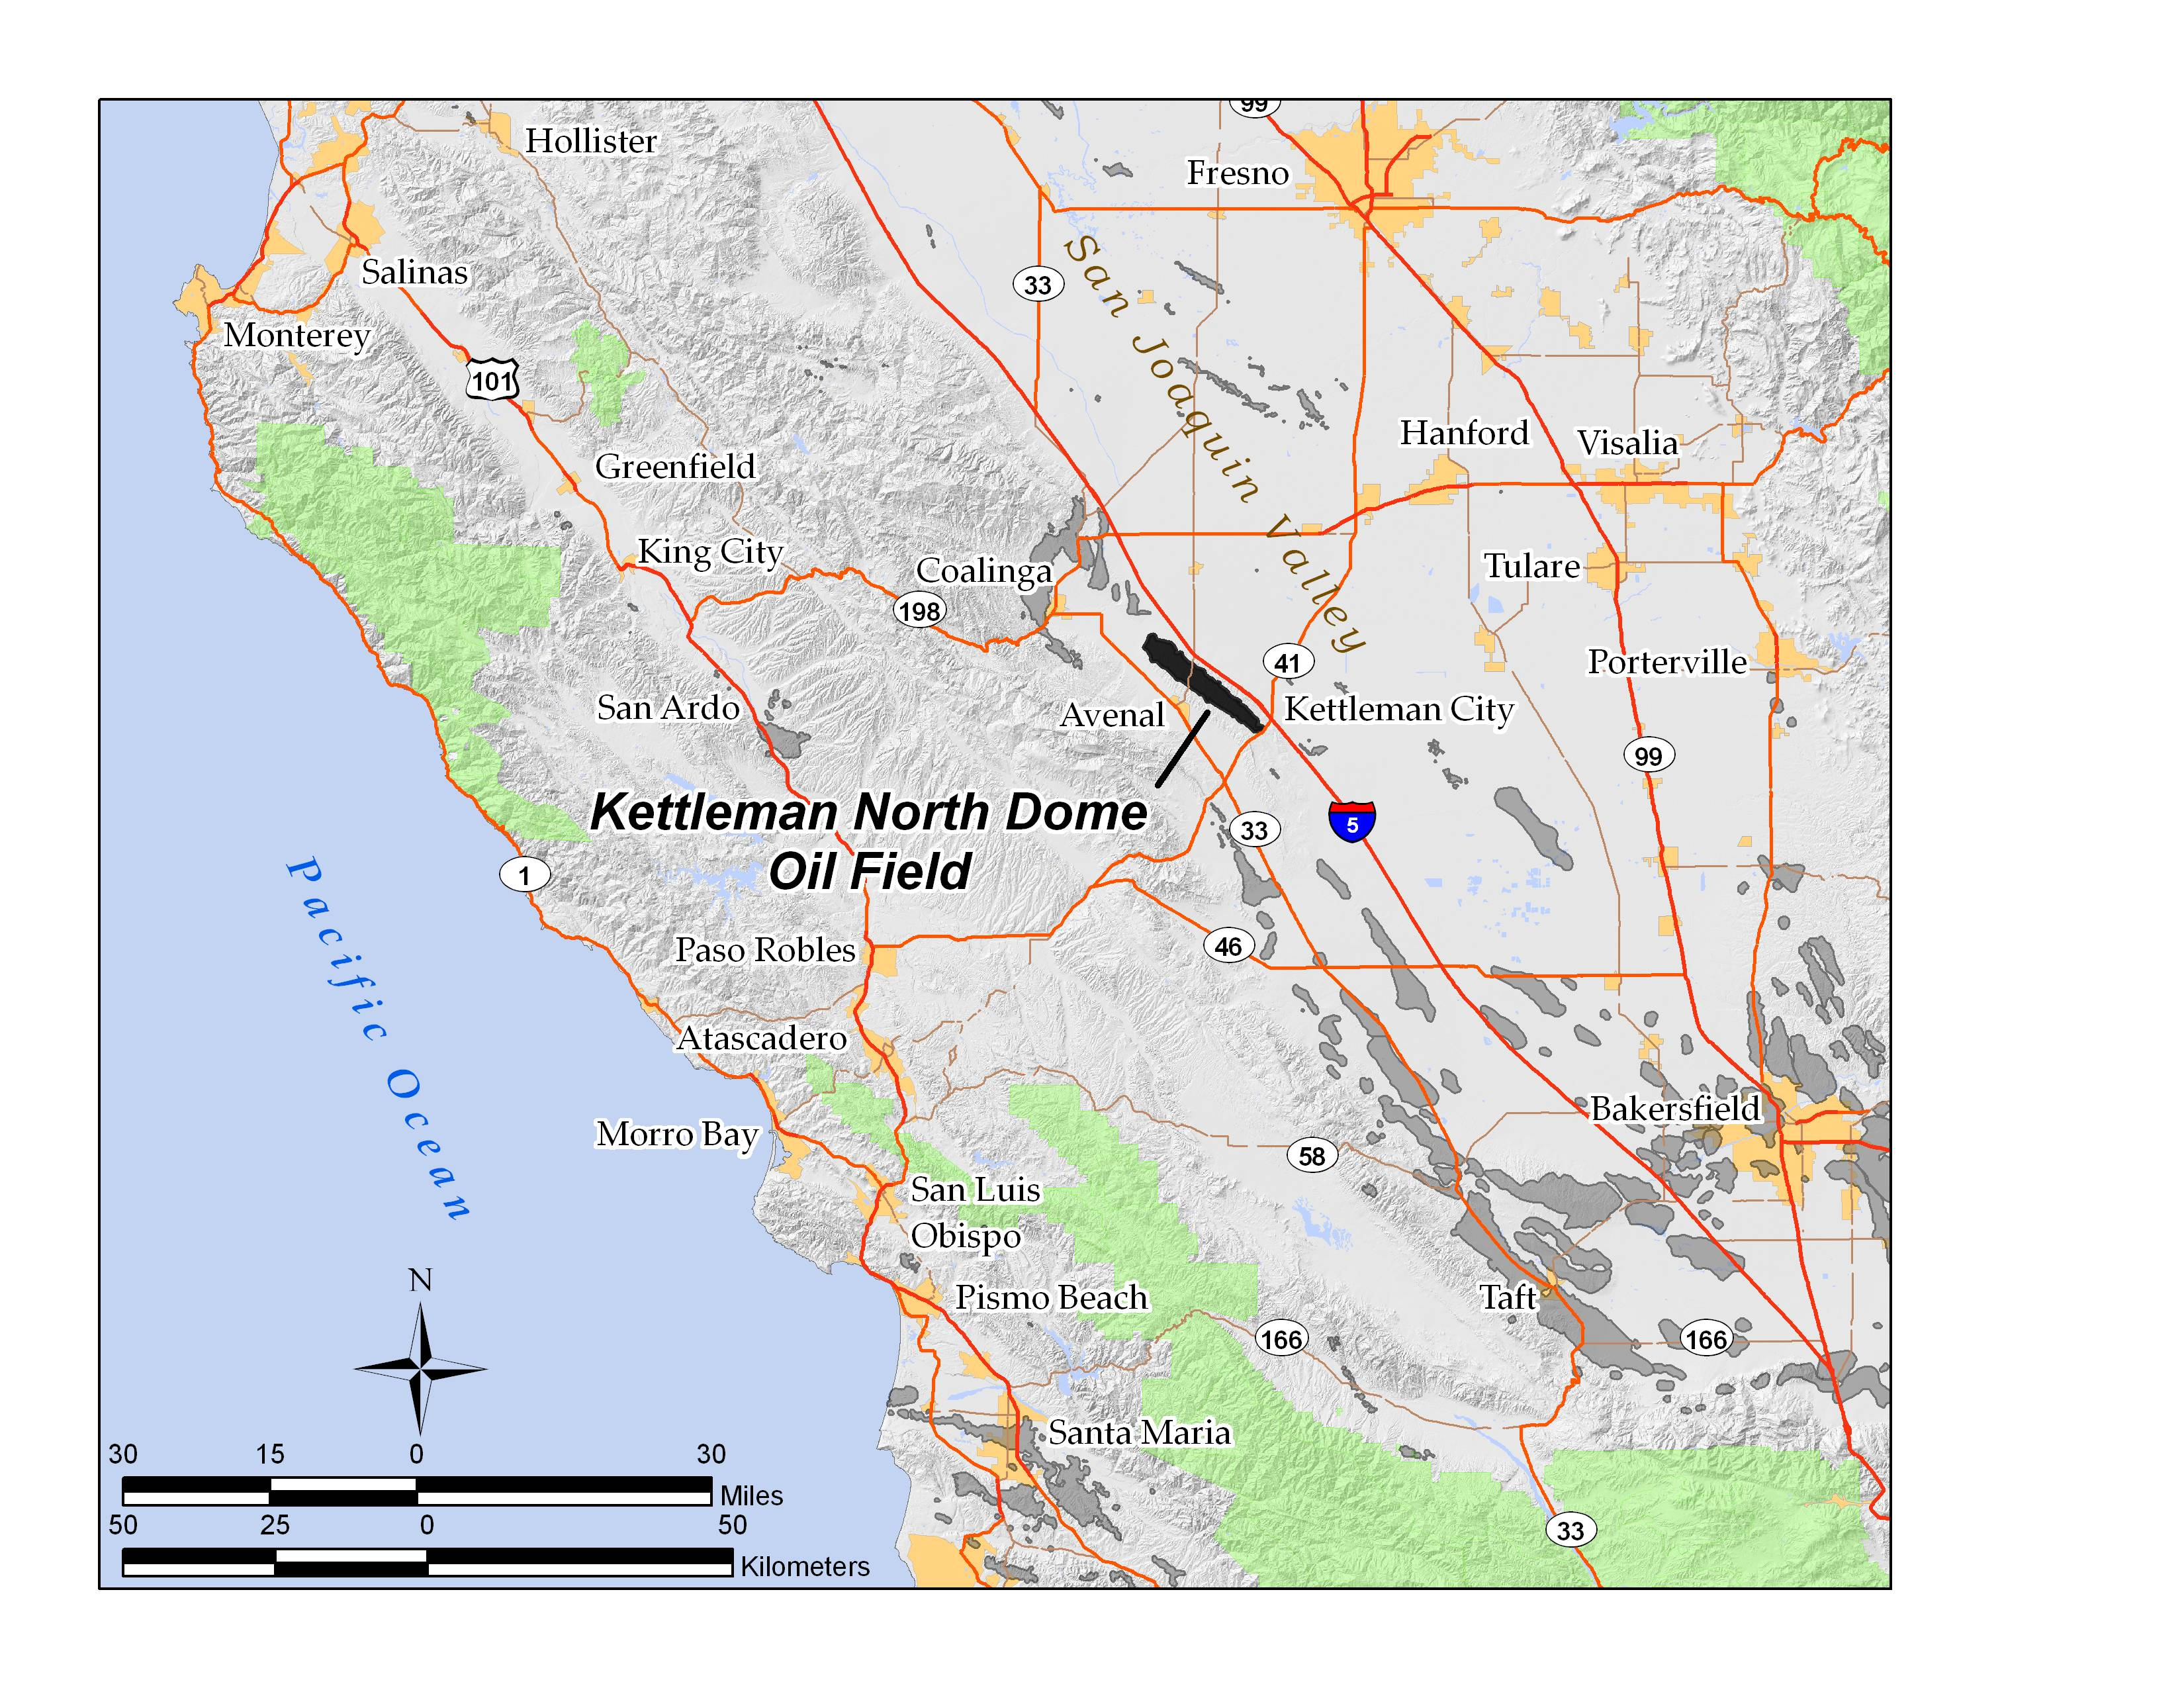 Kettleman North Dome Oil Field - Wikipedia on pacific time zone map, newport beach map, jackson map, san joaquin county map, lawndale map, goshen map, oakland map, kings county map, solano county map, visalia map, el segundo map, inyo county map, corcoran map, hanford map, lemoore map, fresno map, modesto map, santa clarita map, pacific grove map, mendocino map,